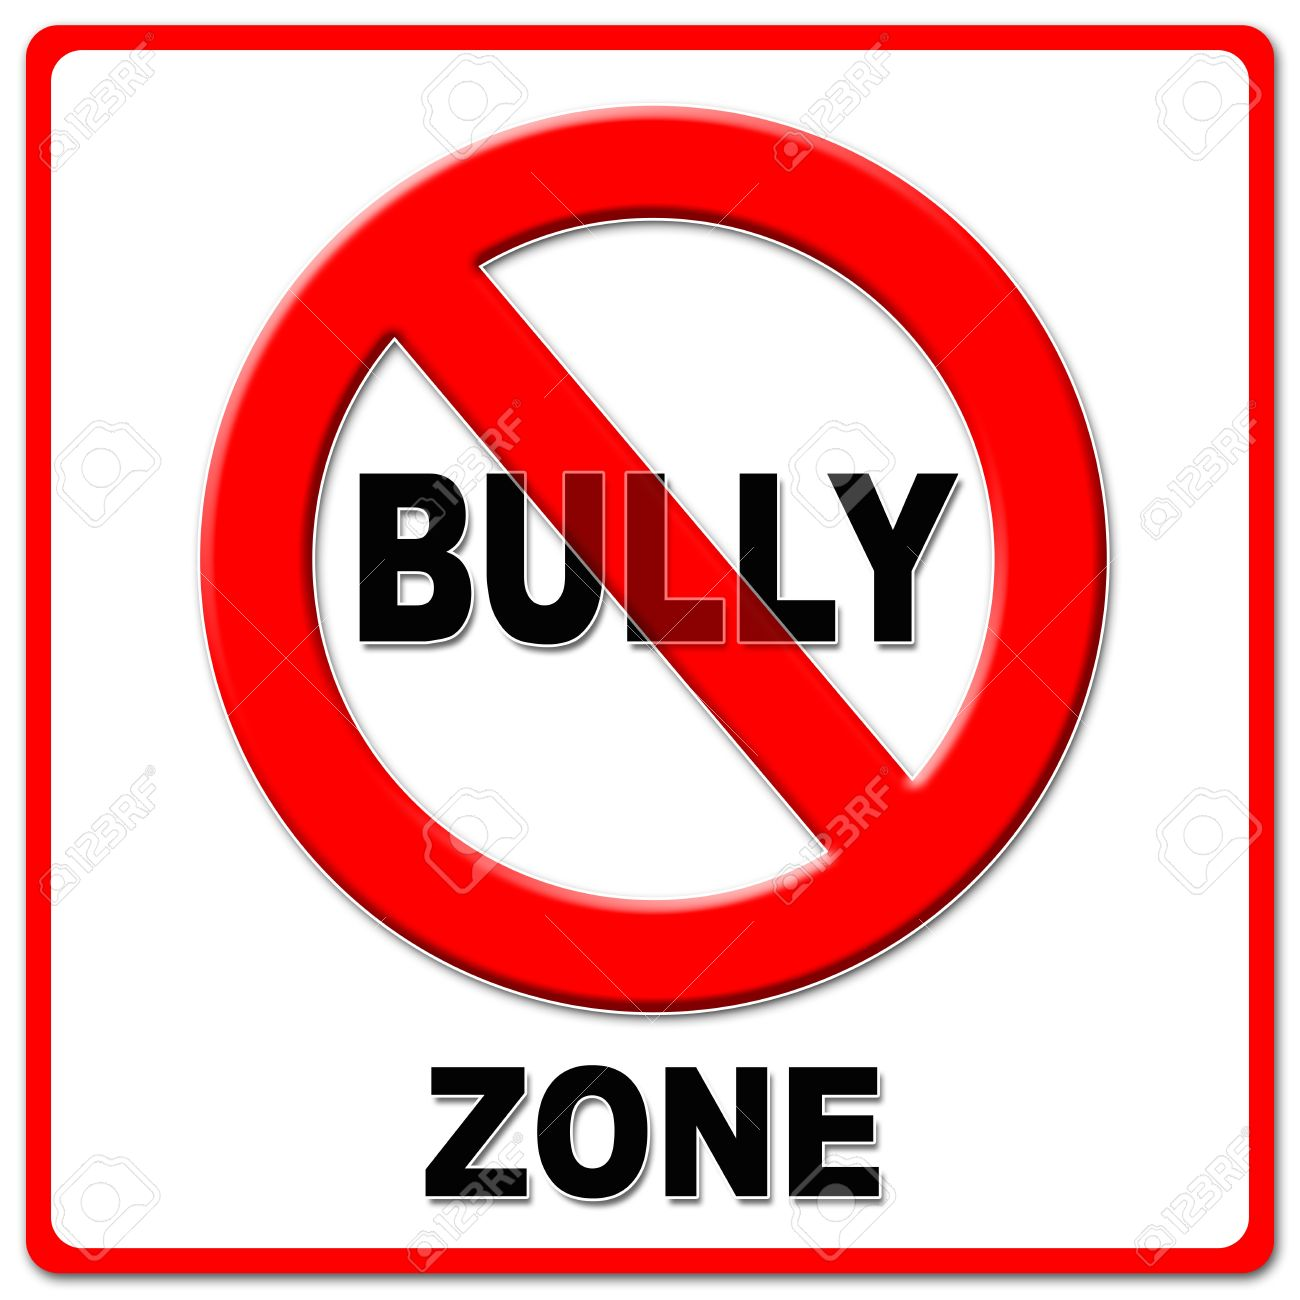 No Bully Zone Sign On White Background. Stock Photo, Picture And ...